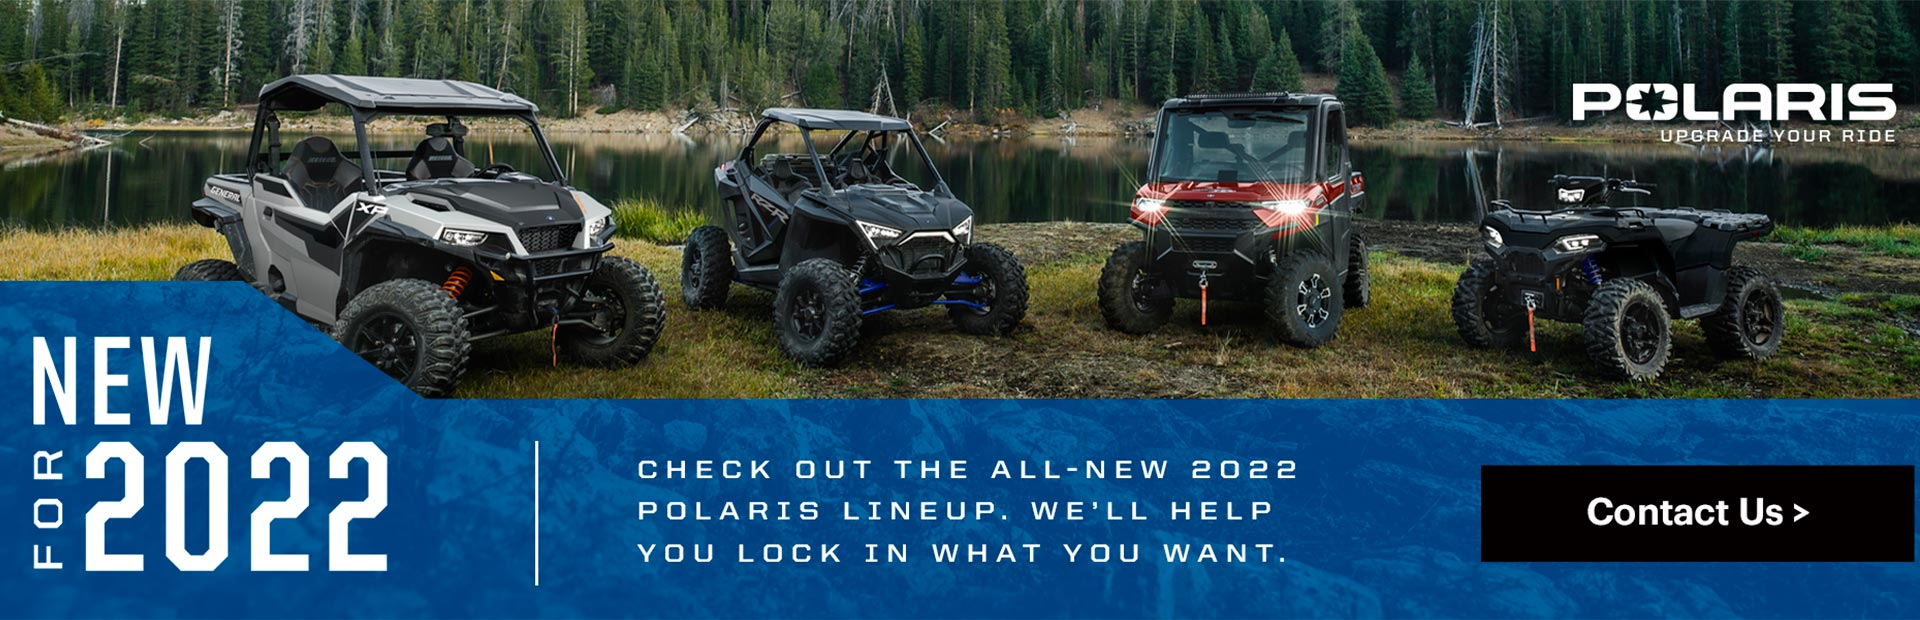 Polaris Ugrade Your Ride at Brenny's Motorcycle Clinic, Bettendorf, IA 52722